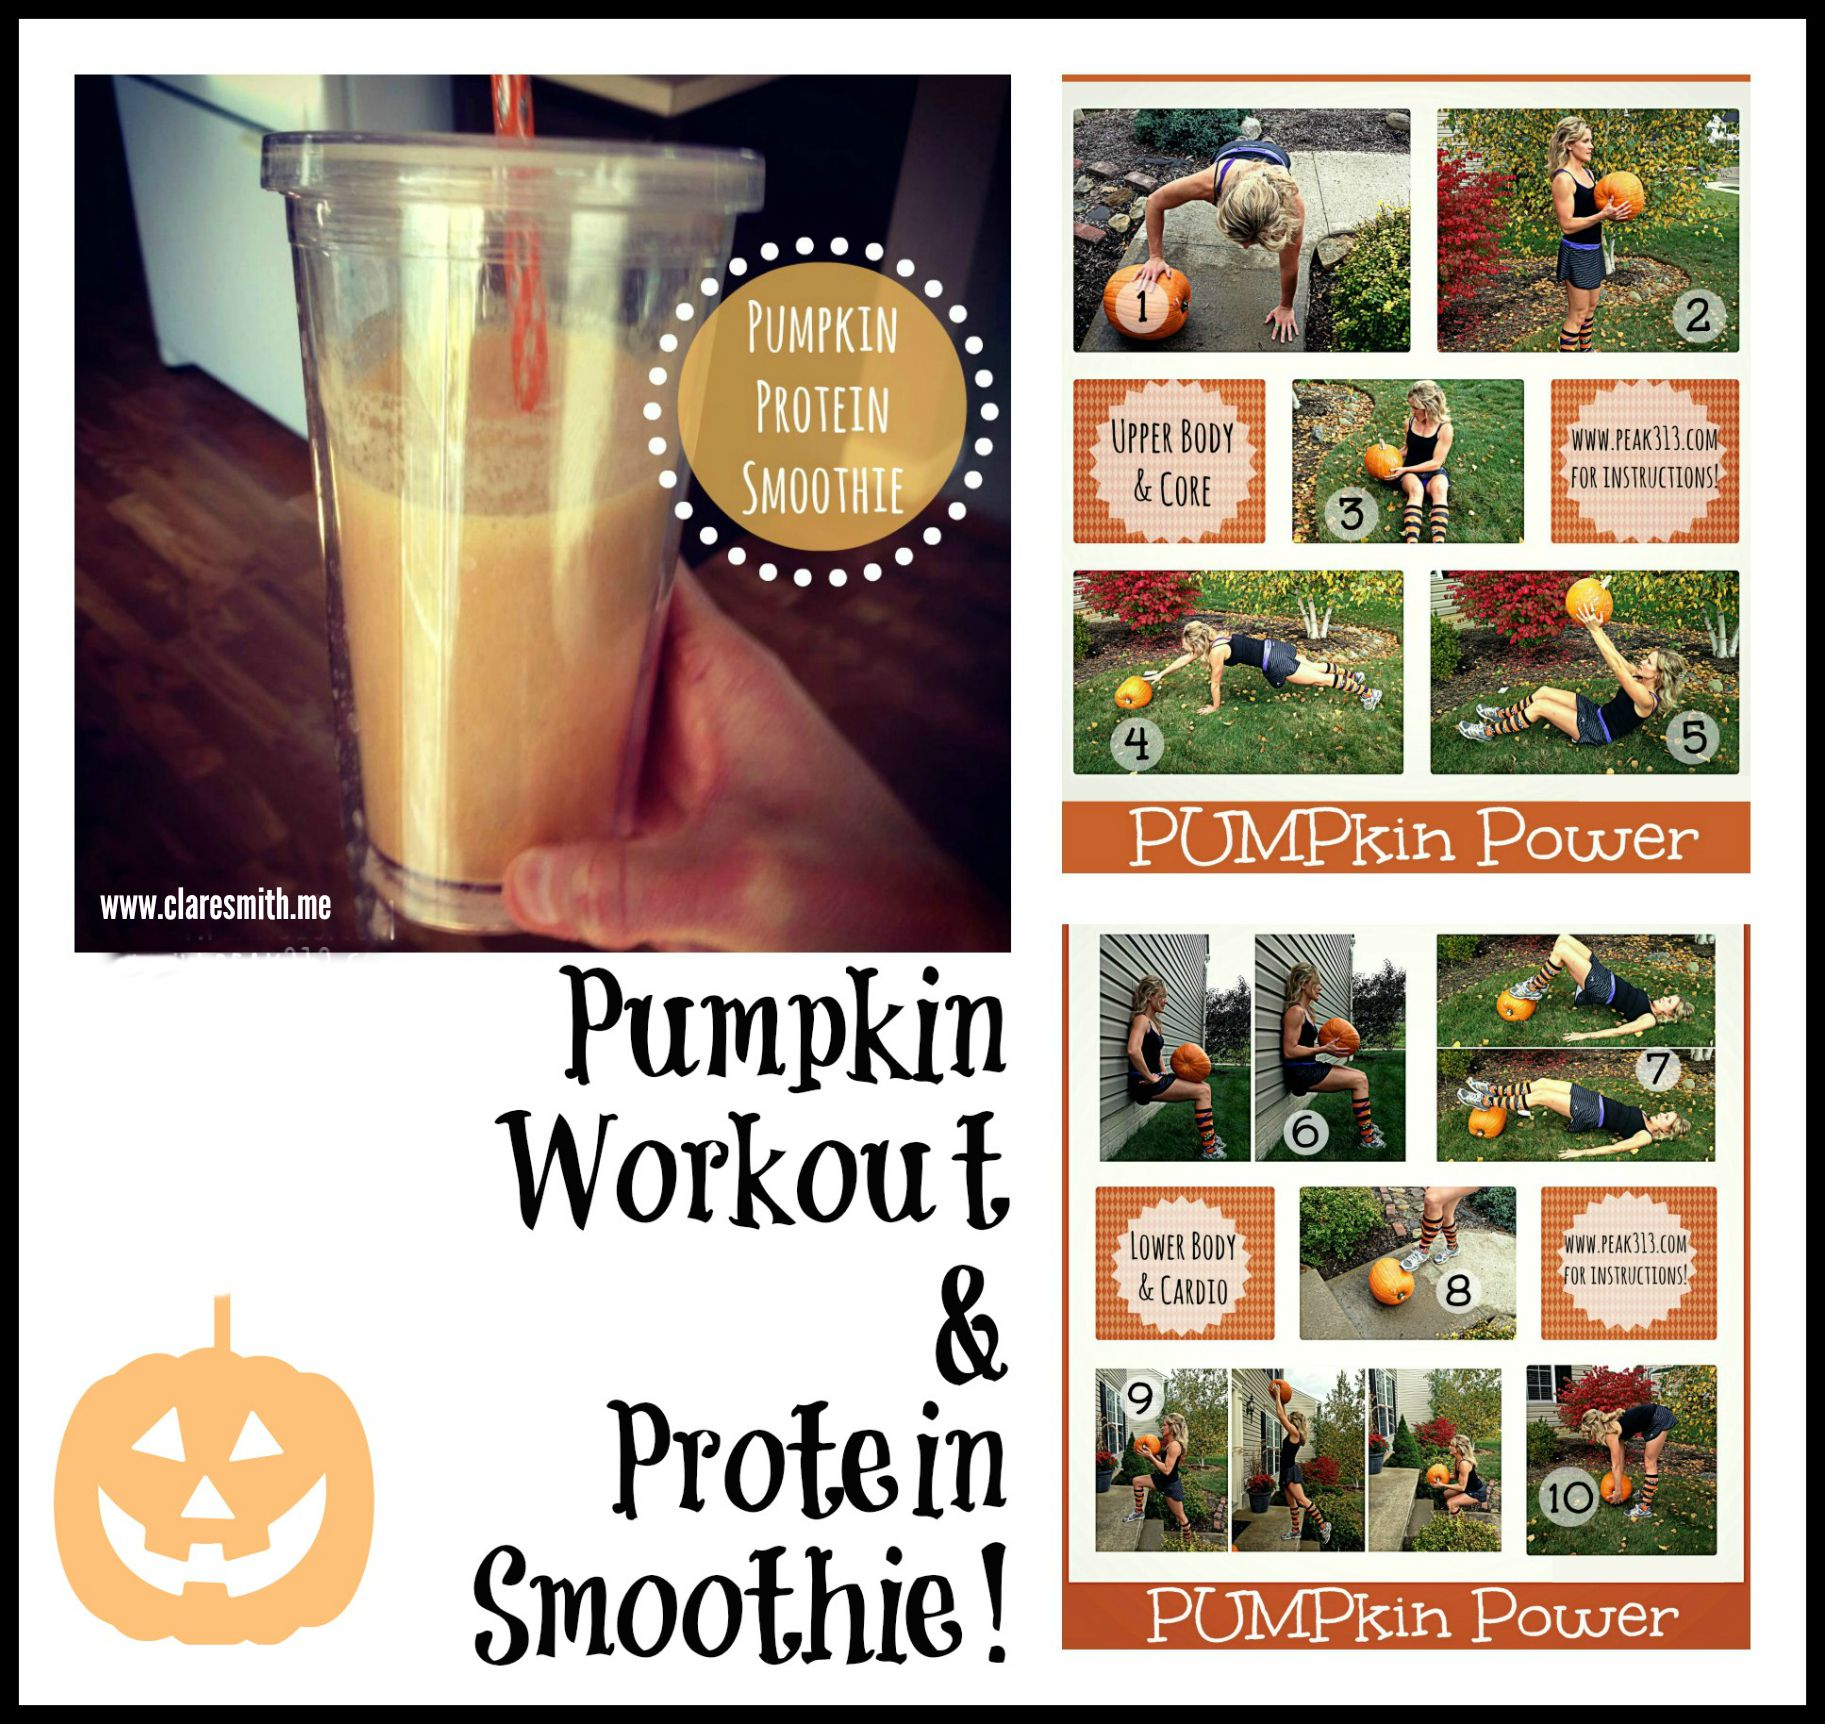 ... Full Body Workout Using a Pumpkin! + Pumpkin Protein Smoothie Recipe